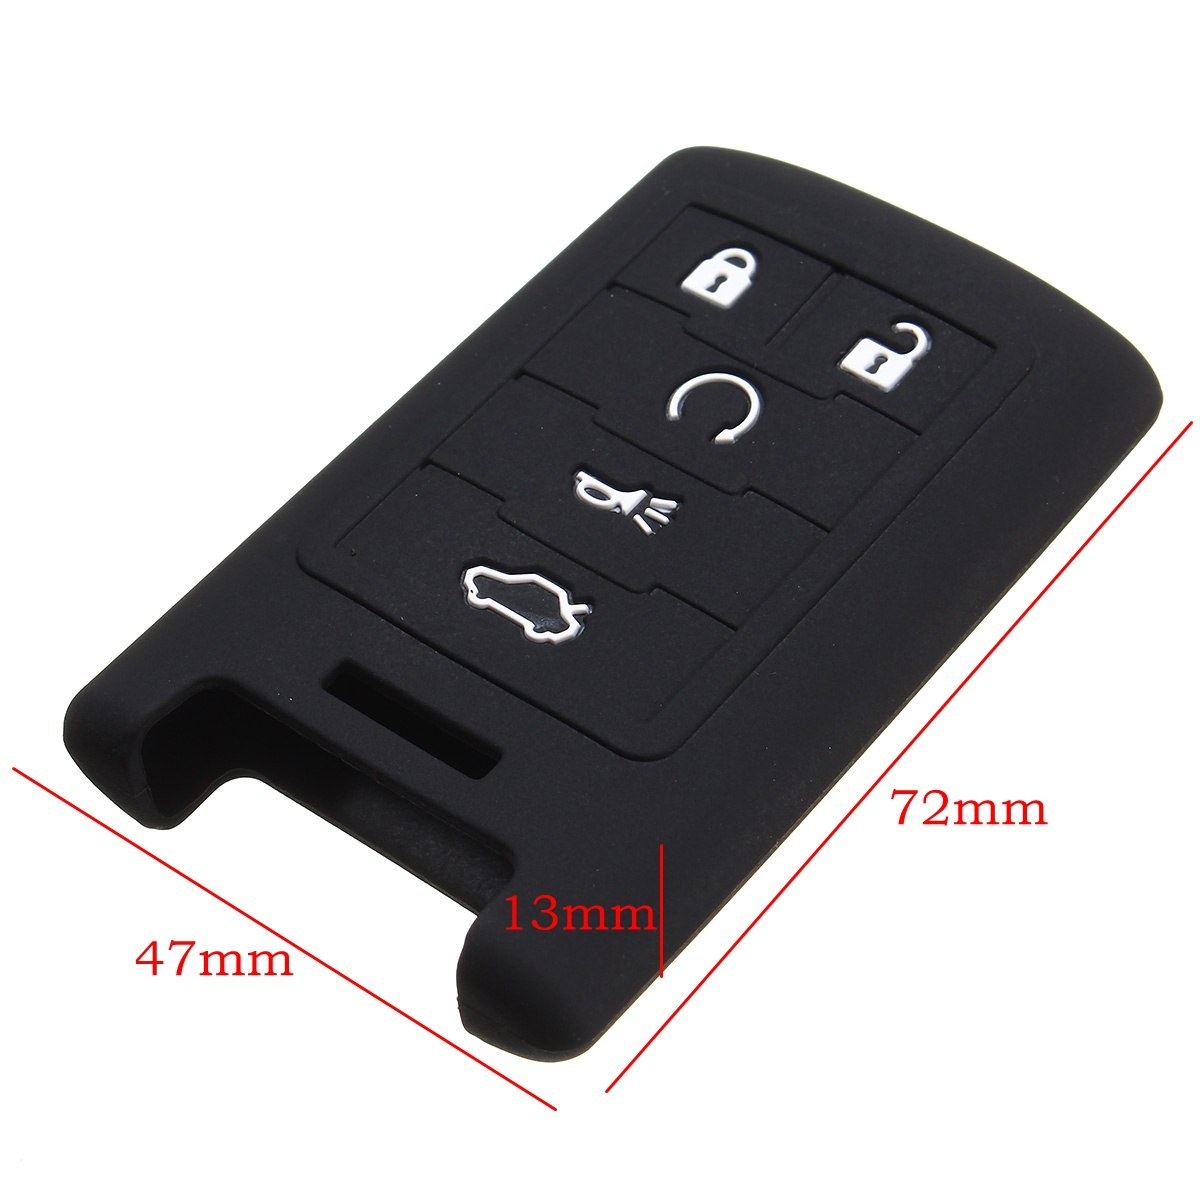 exhaust cts brake revs updated car fob key cadillac new led com lights with daily badges